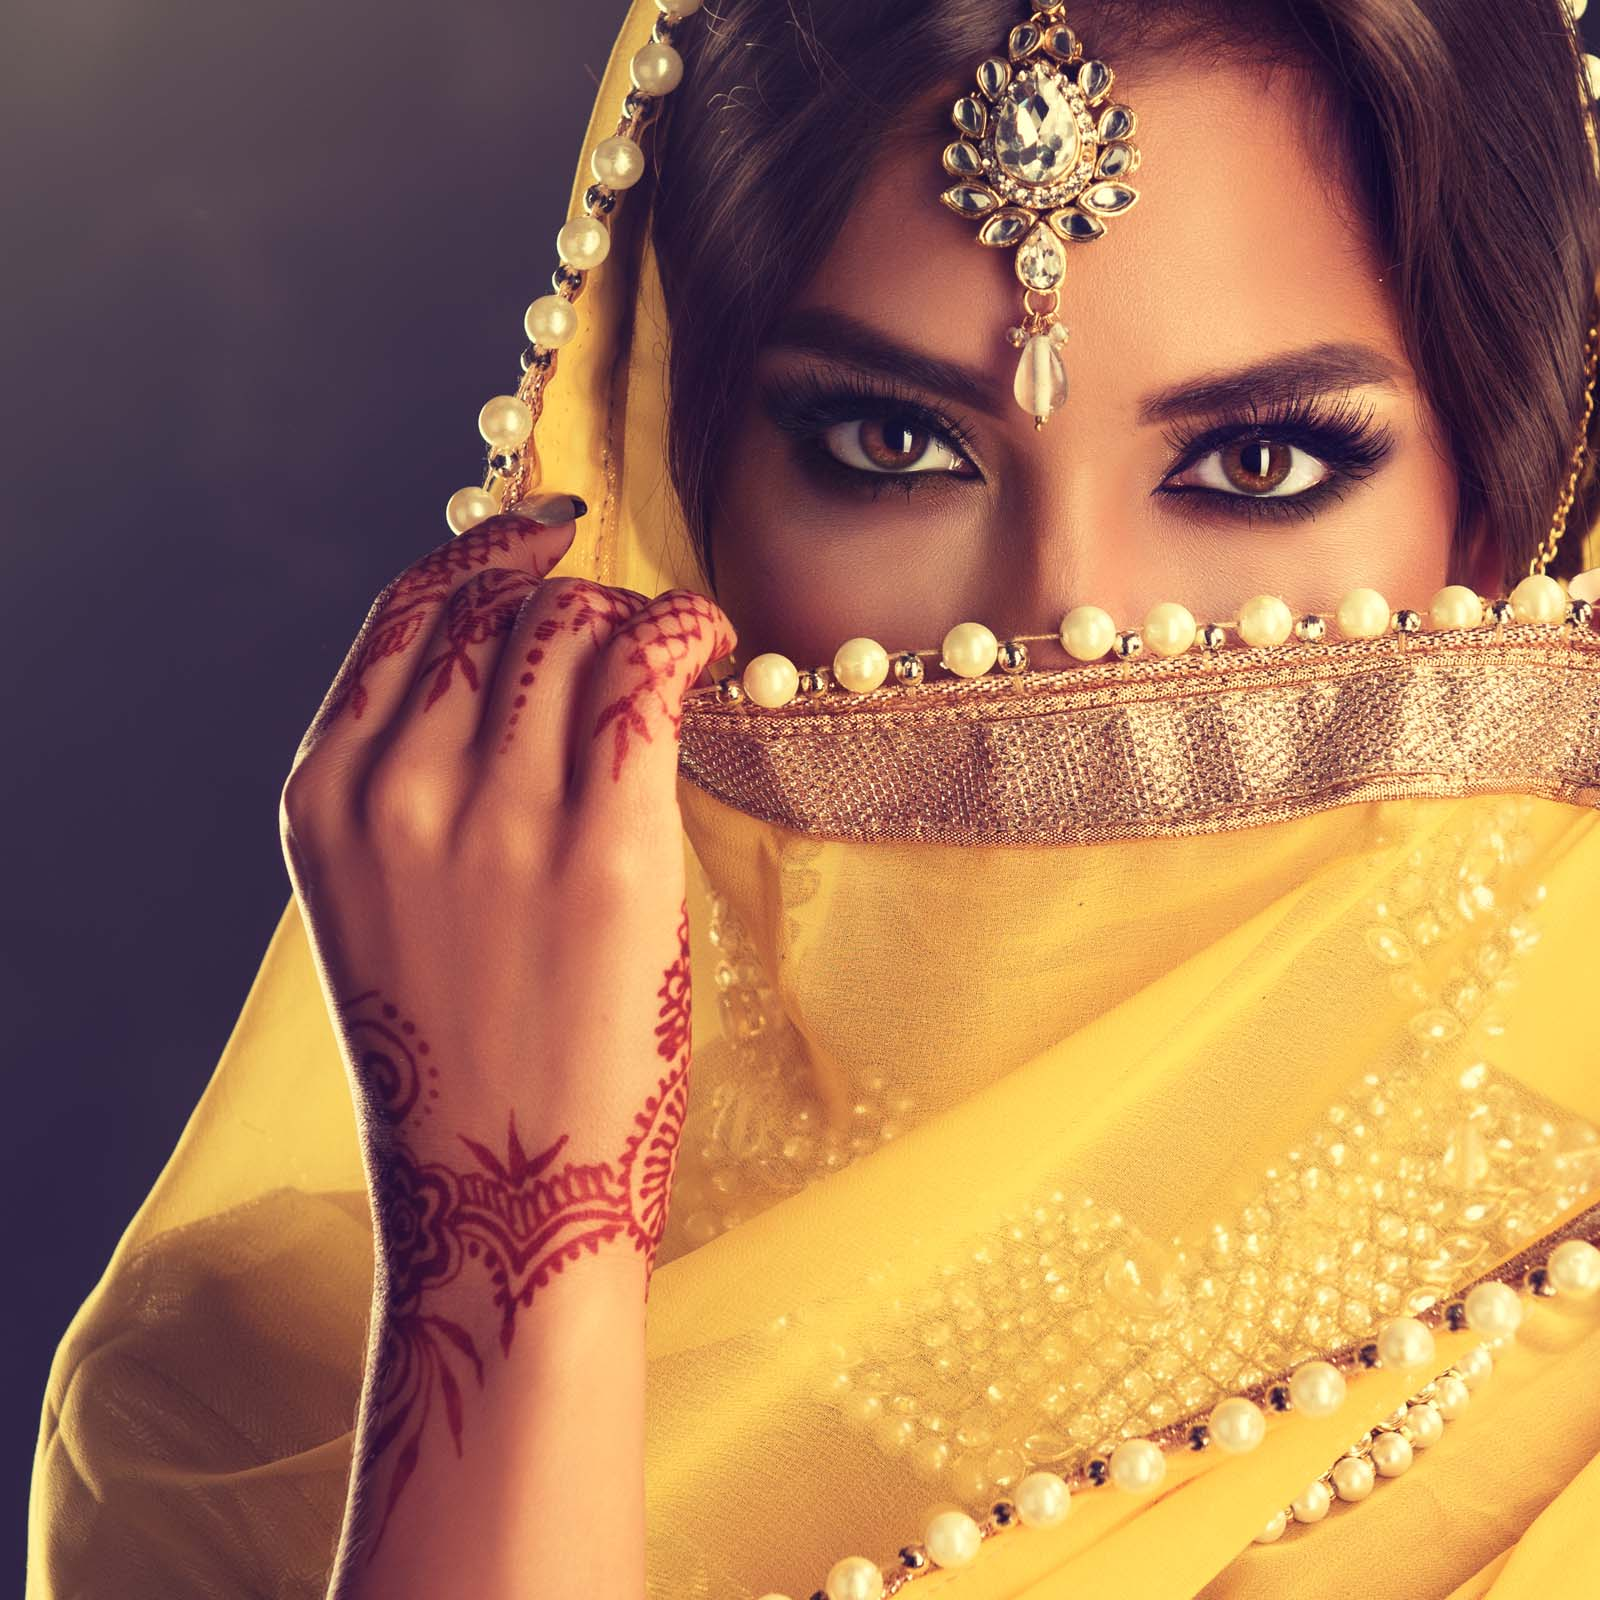 Indian Women More Bullish On Crypto than Men, Invest Twice As Much